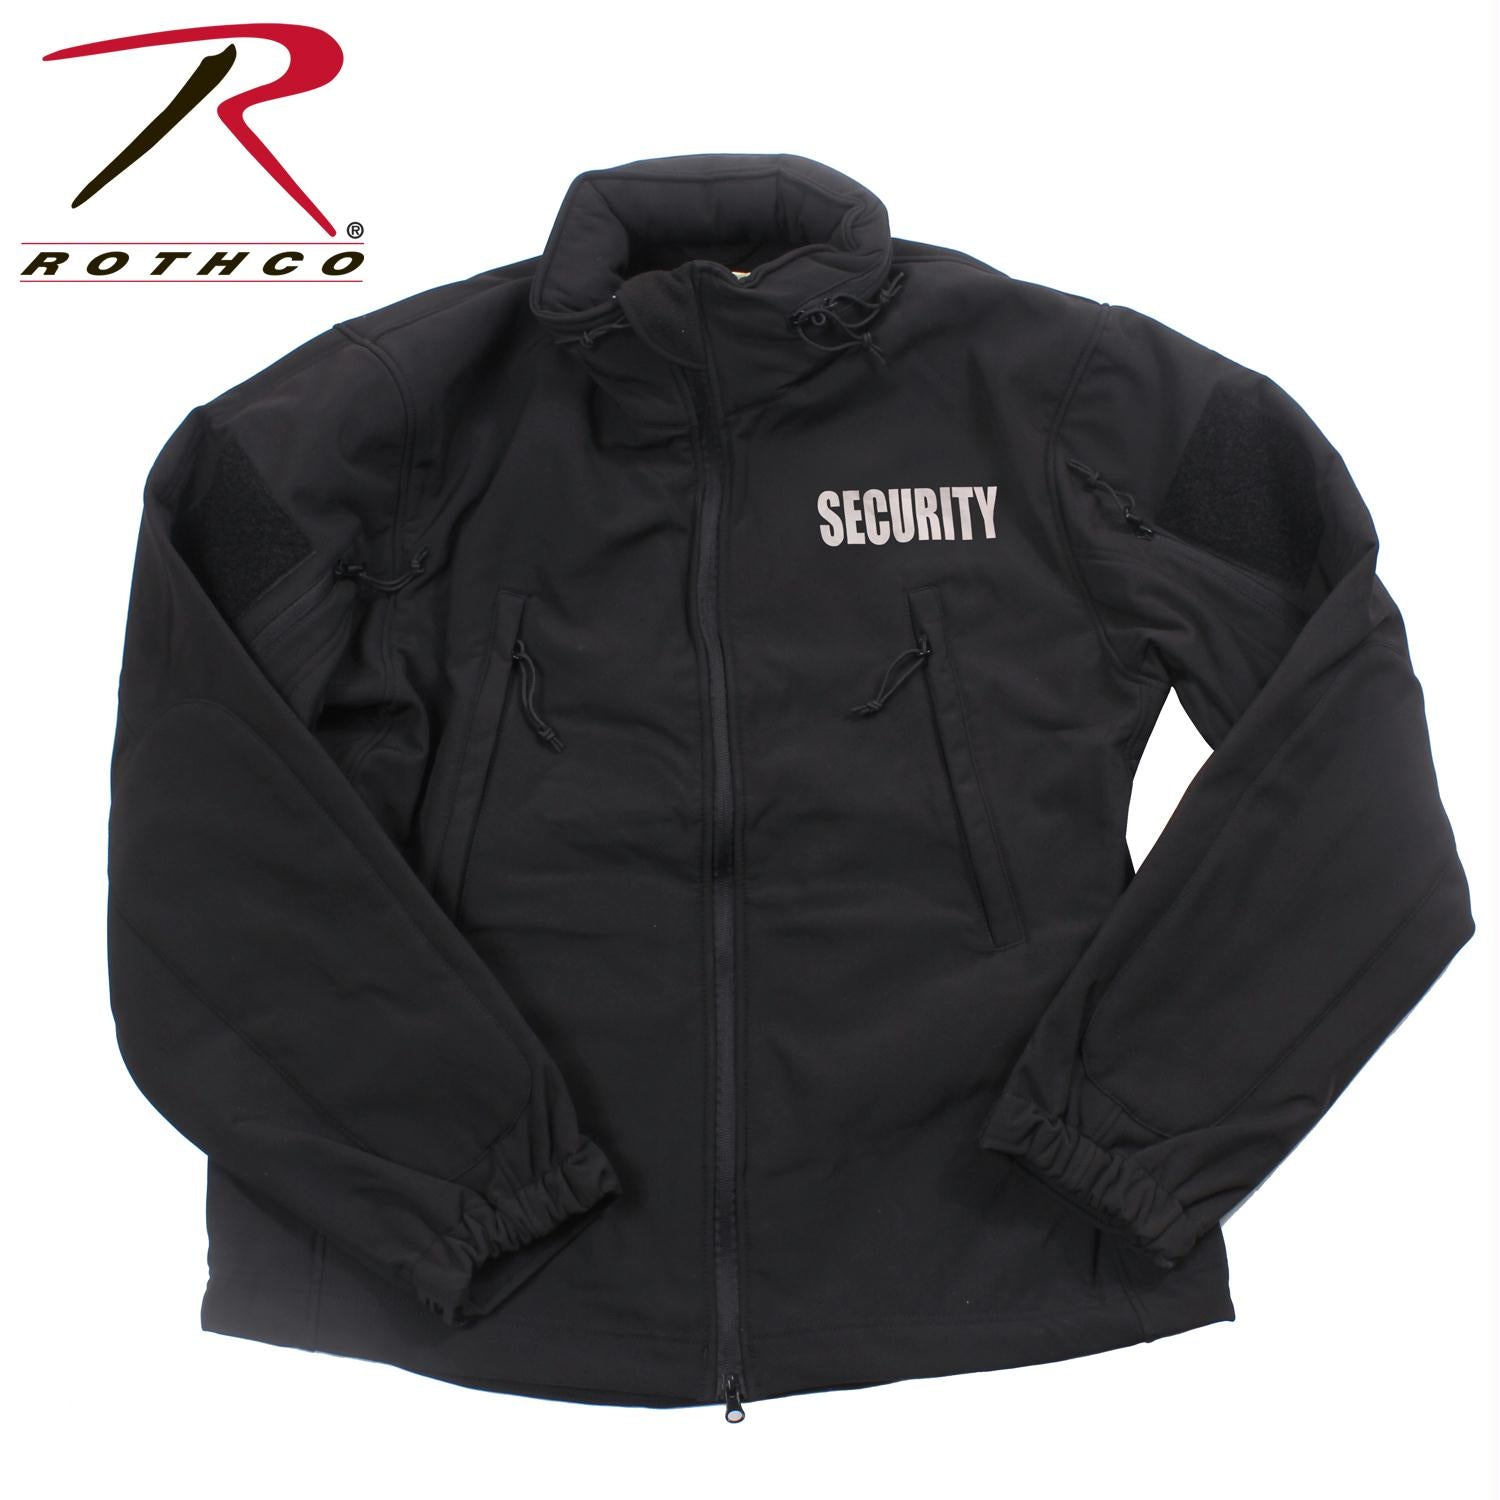 Irregular Special Ops Soft Shell Security Jacket - M